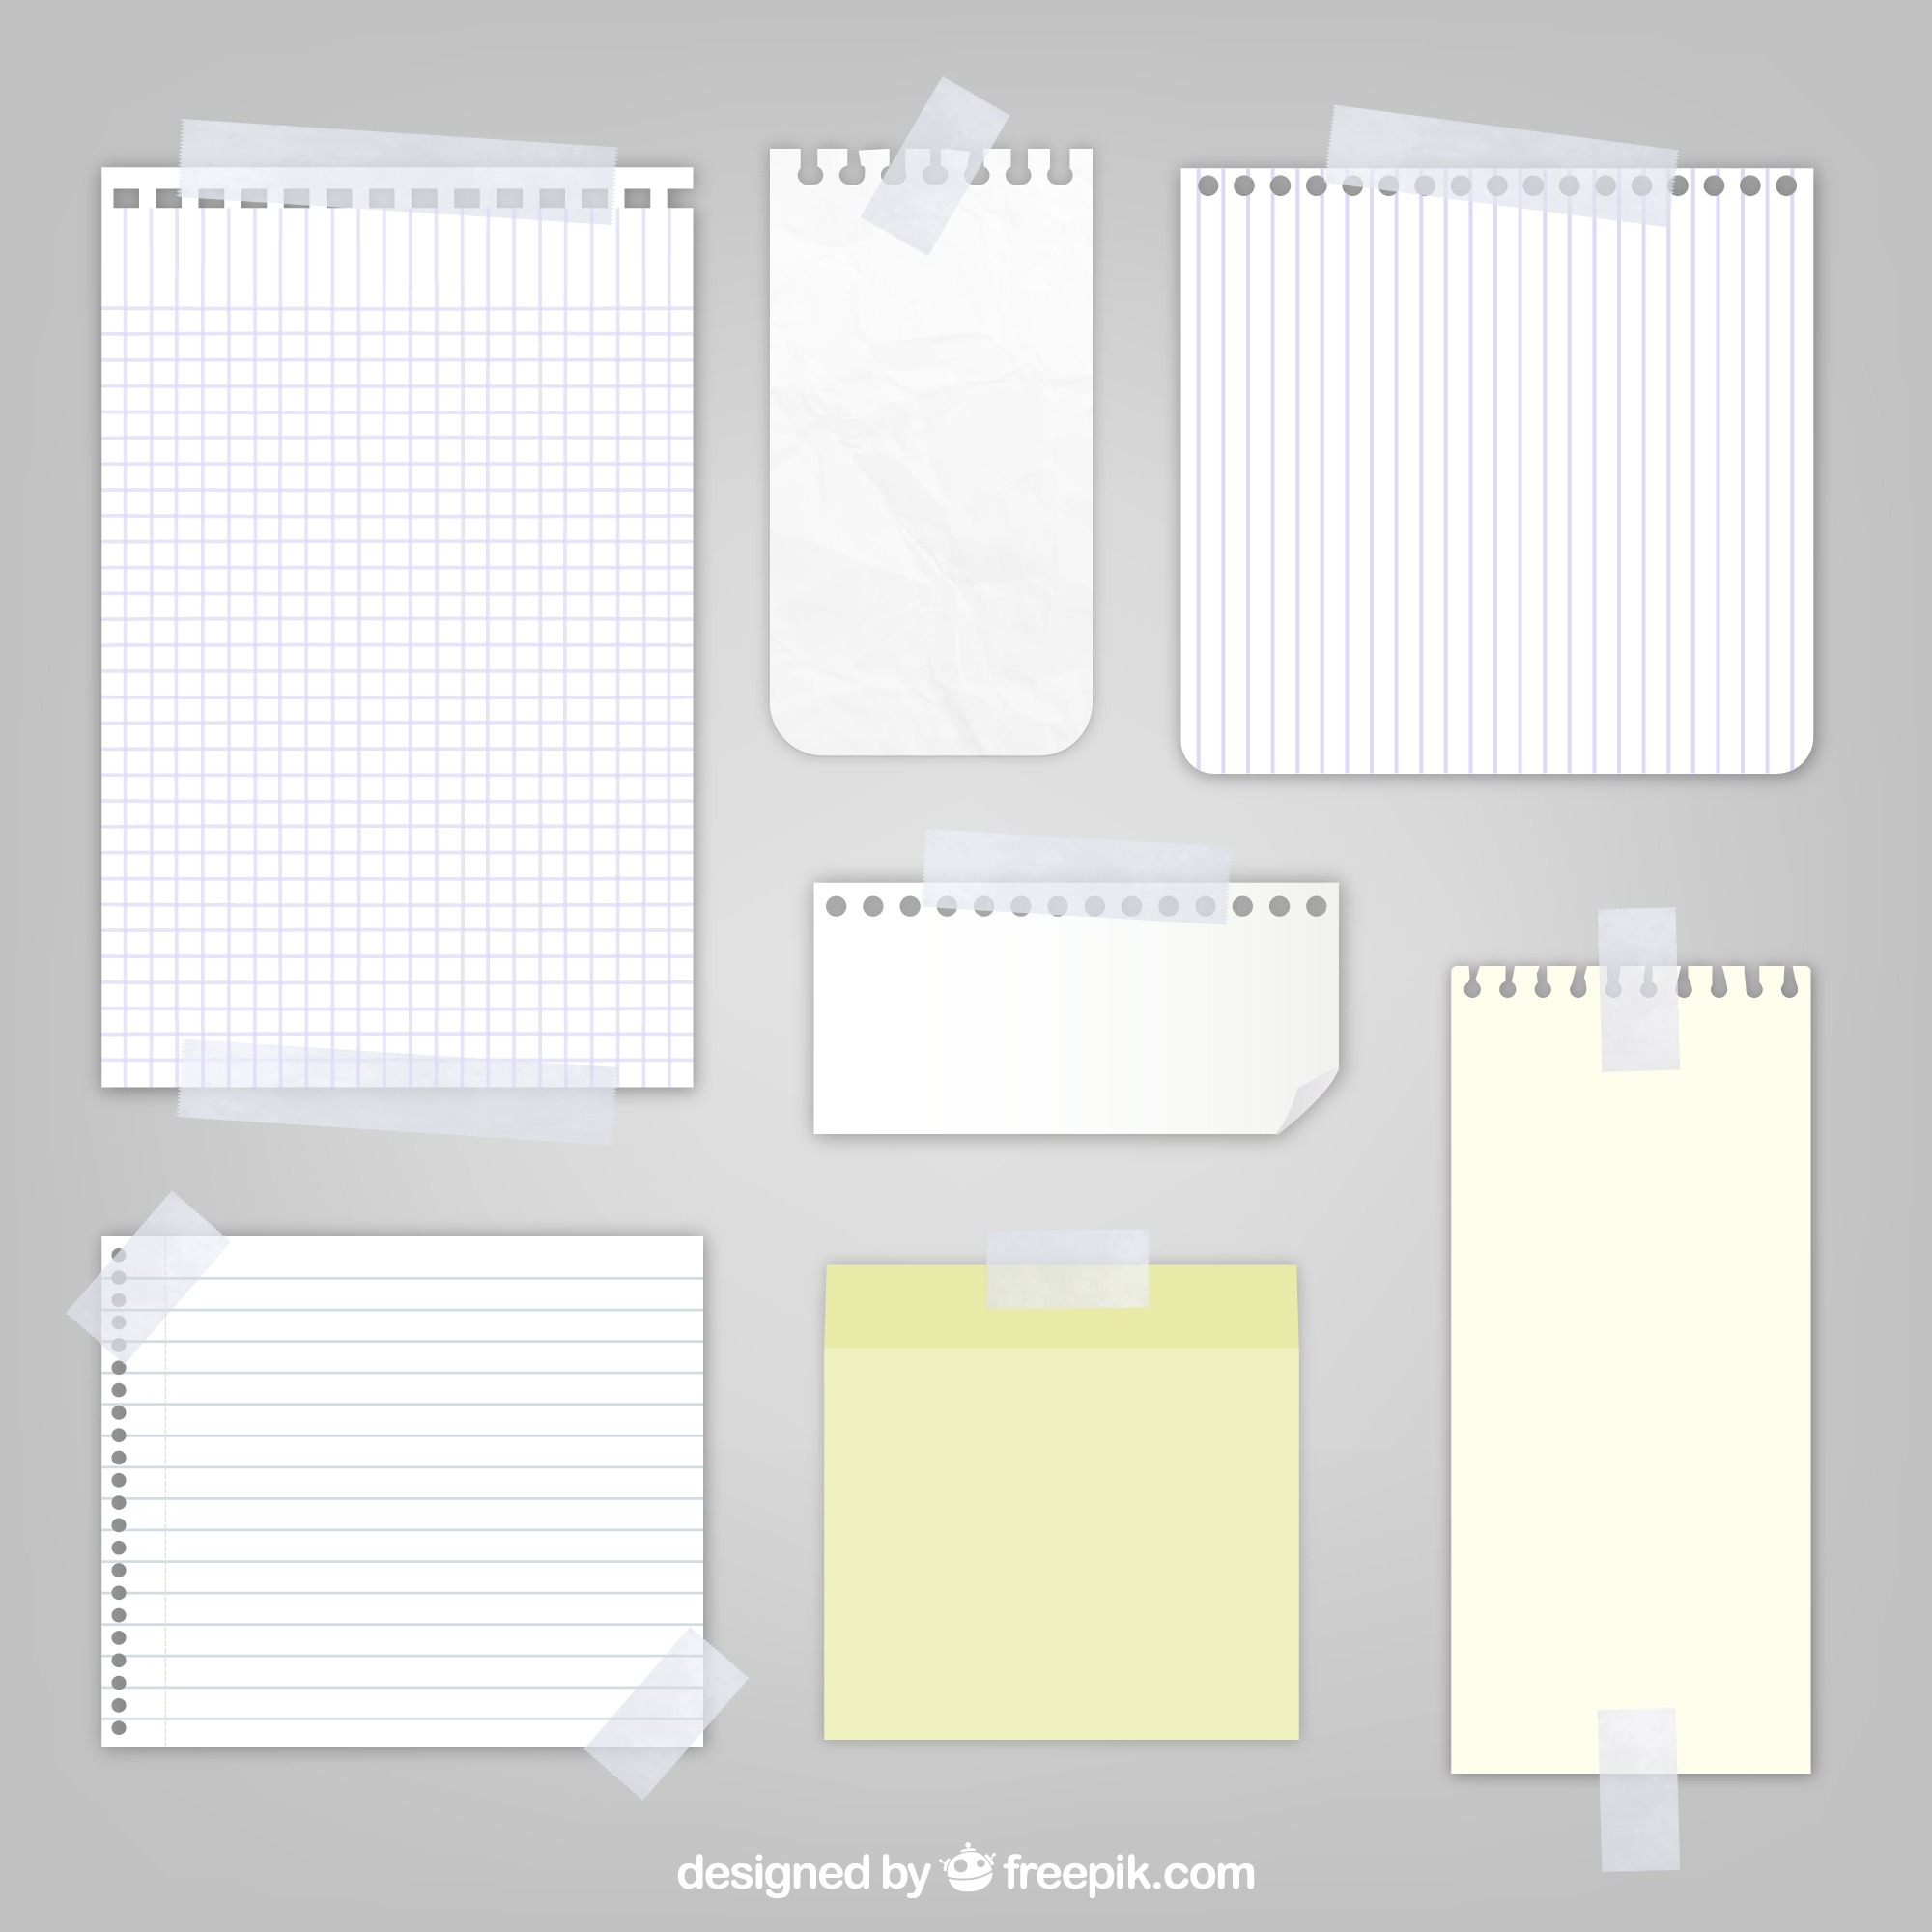 Sheets of paper with sticky tape